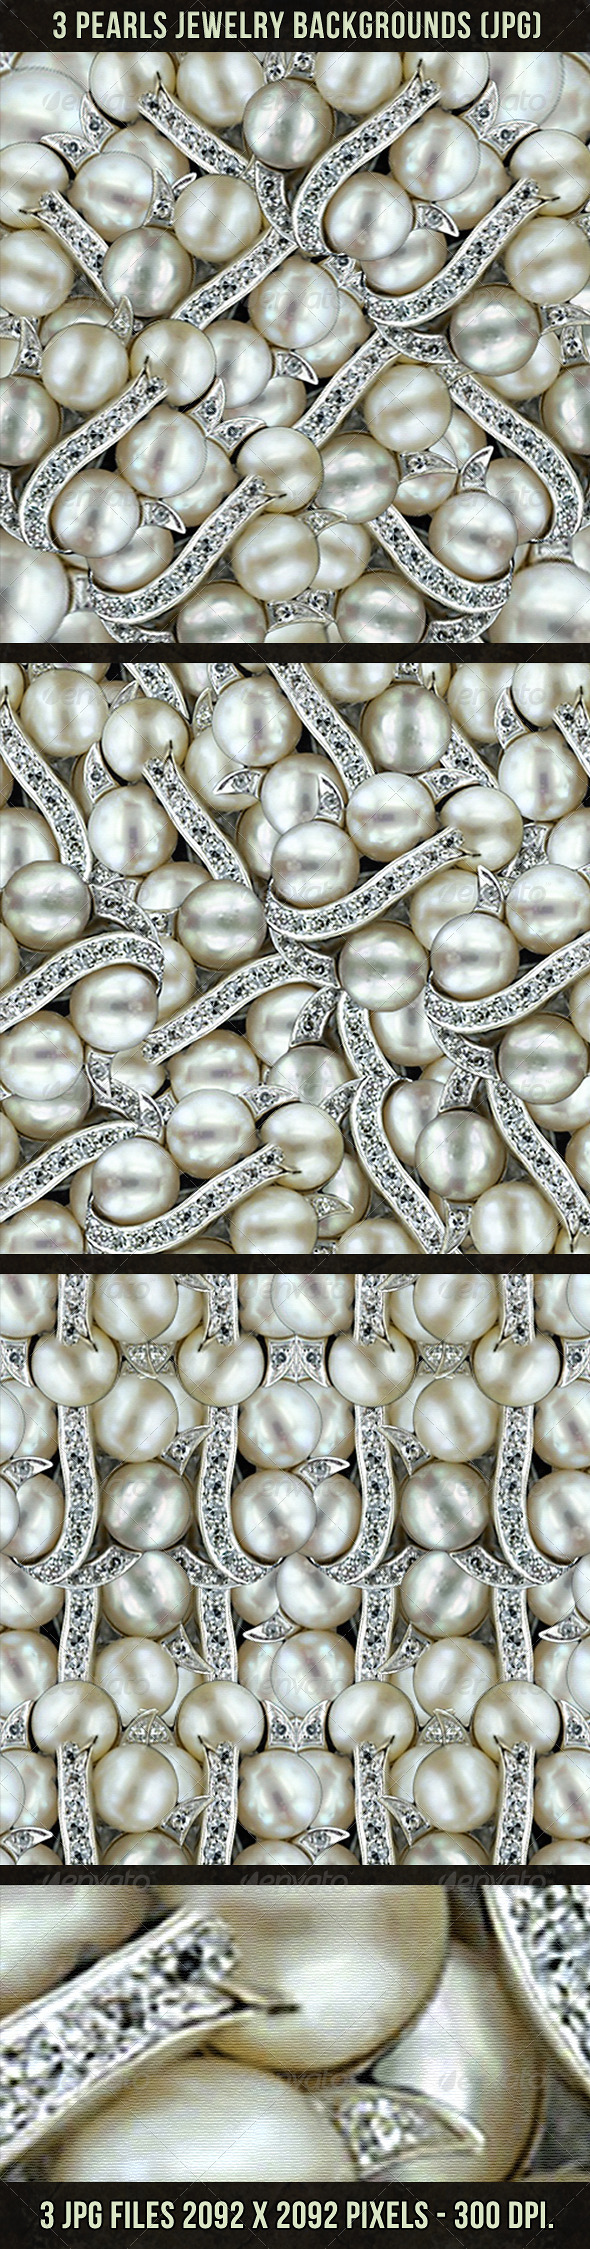 GraphicRiver 3 Pearls Jewelry Backgrounds 4629142